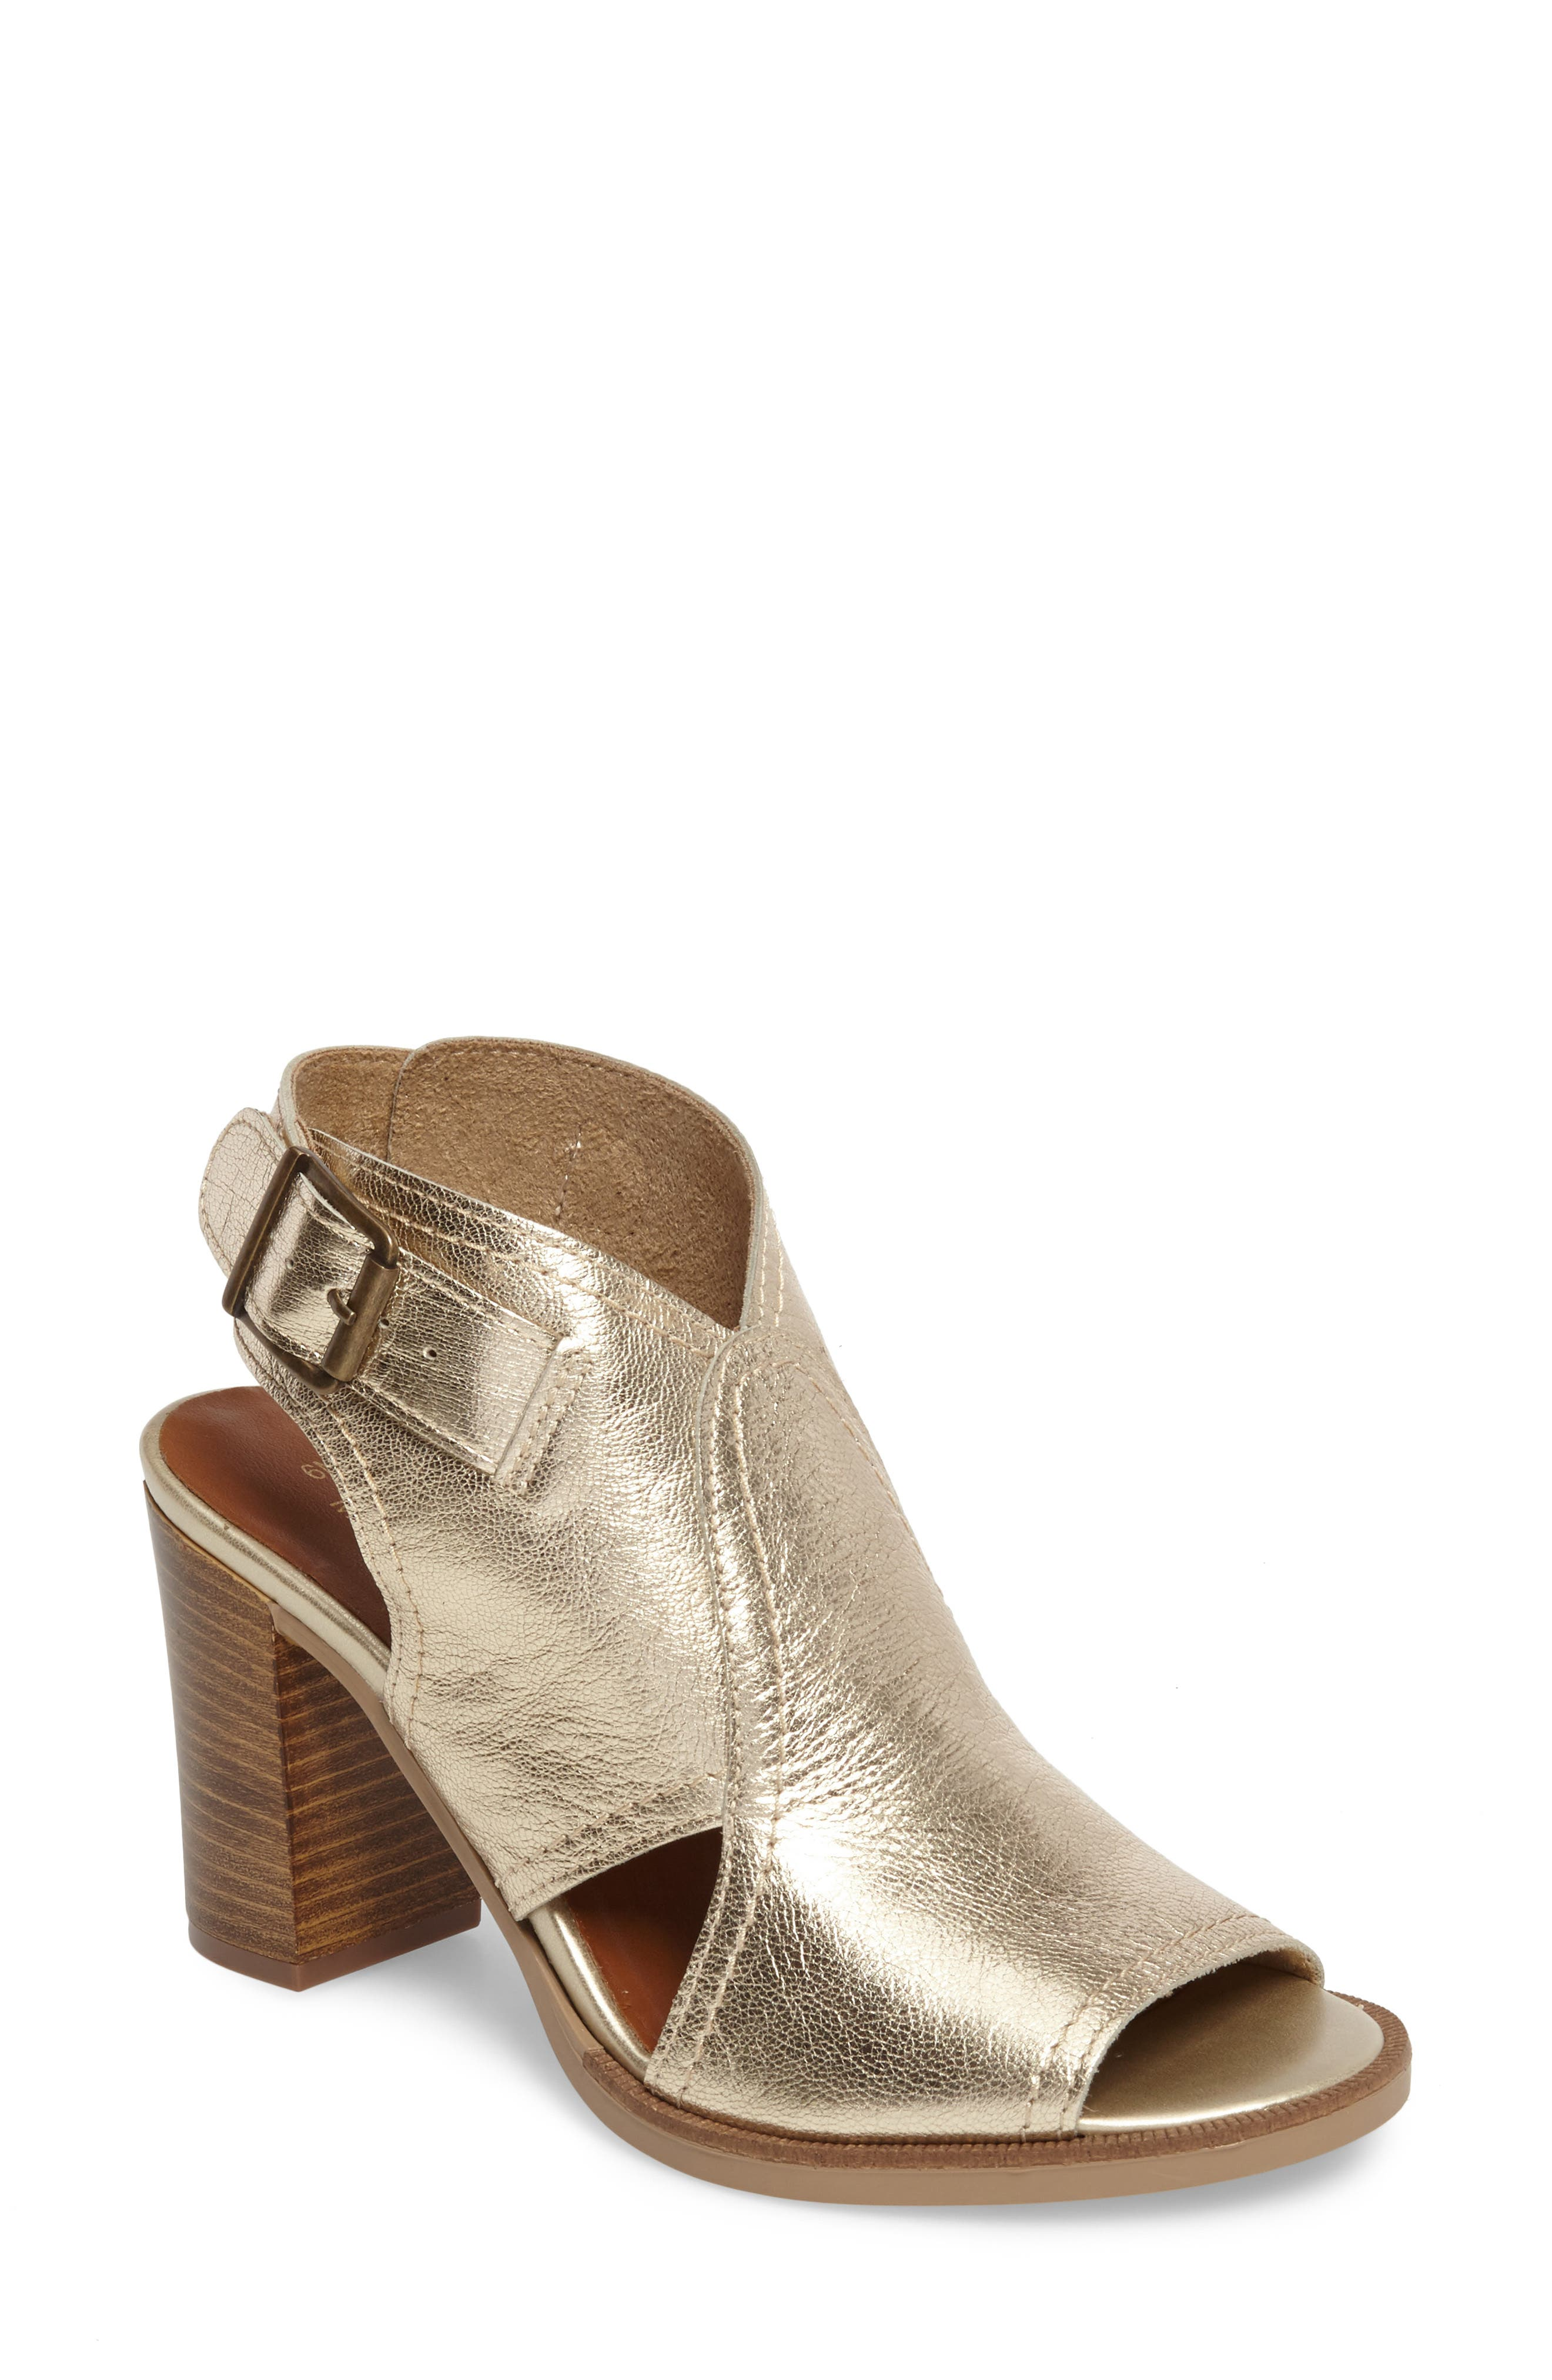 Alternate Image 1 Selected - Bella Vita Viv Block Heel Sandal (Women)